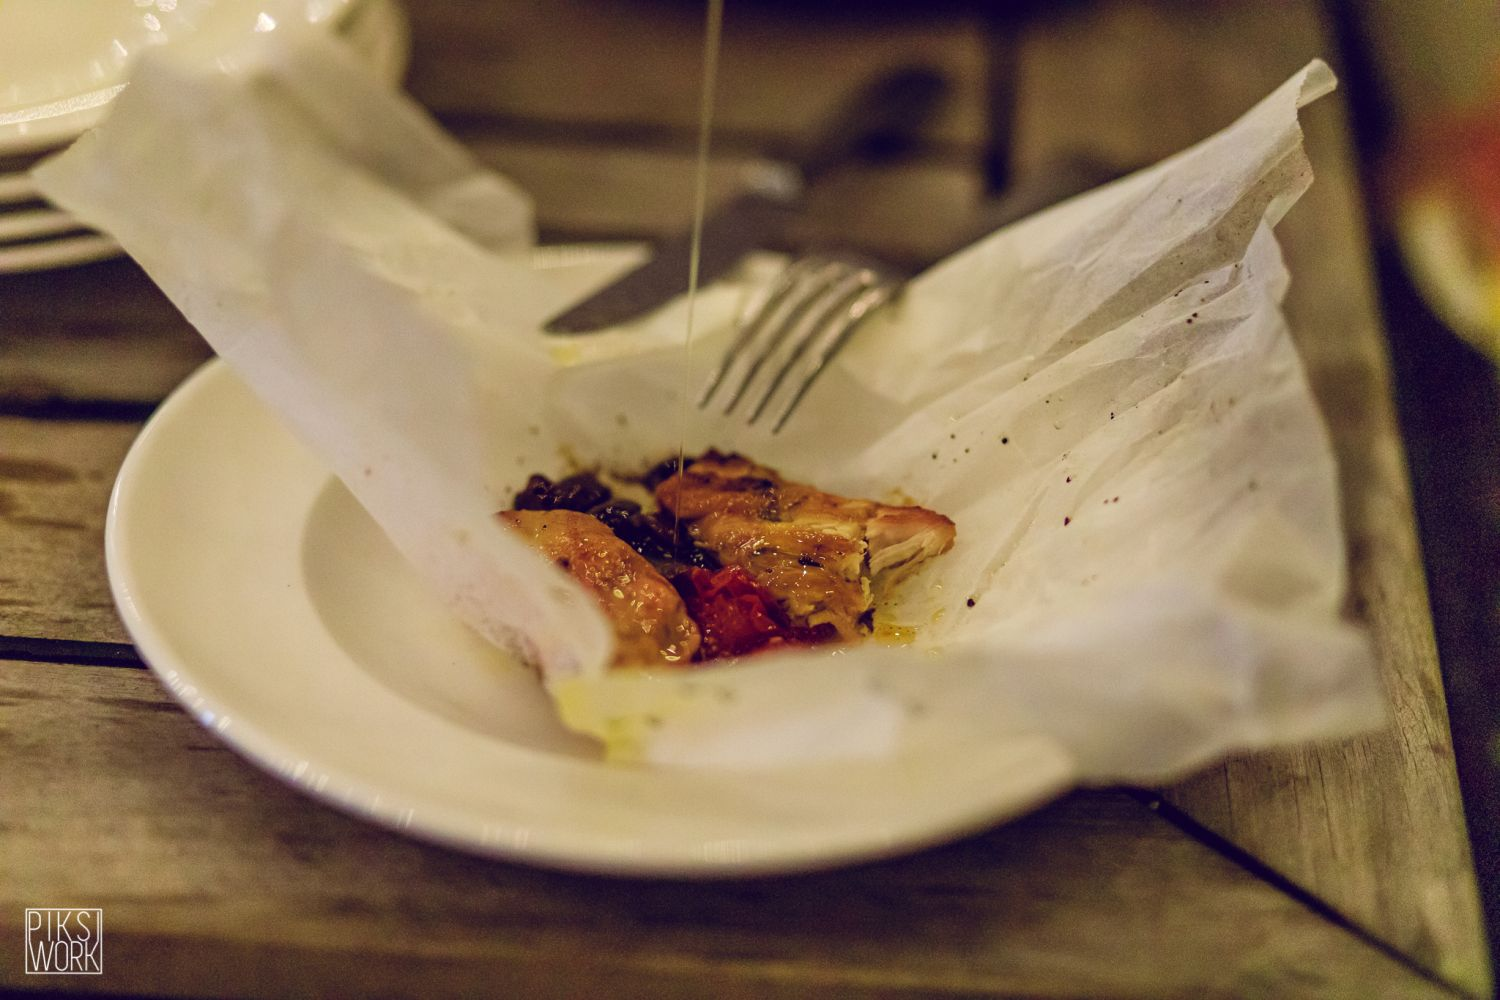 Chicken cooked 'al cartoccio' in a baking paper pouch together with cherry tomatoes and olives